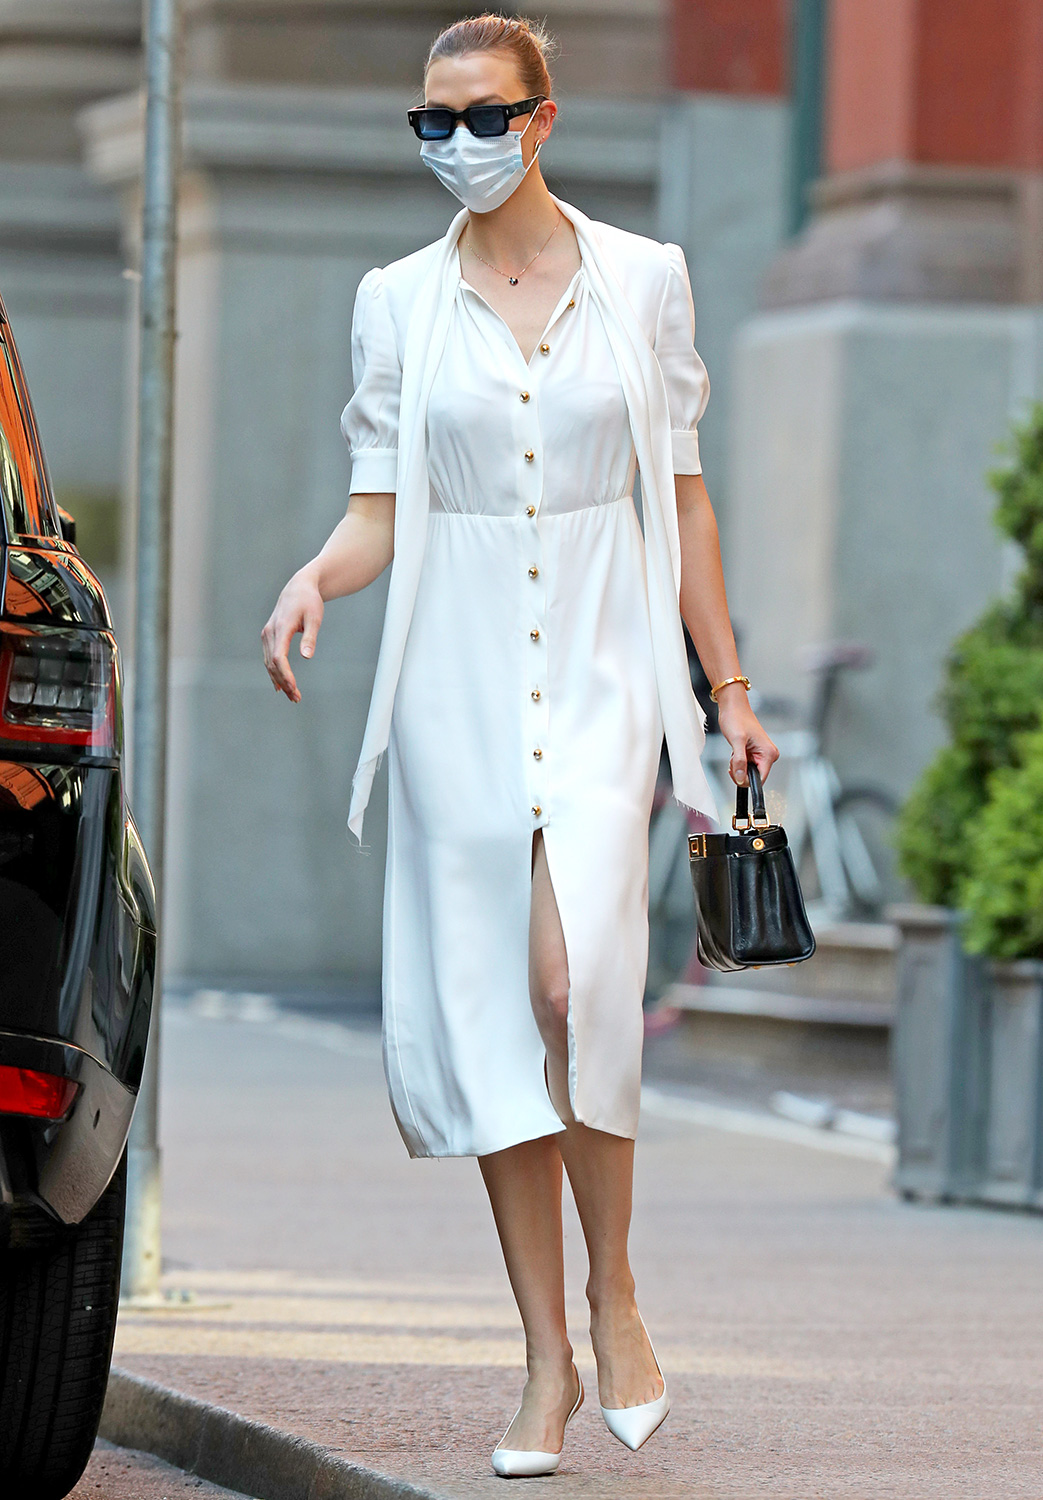 Karlie Kloss is pictured stepping out in New York City. The 27 year old supermodel carried a black handbag and wore a face mask, white dress, and matching heels.